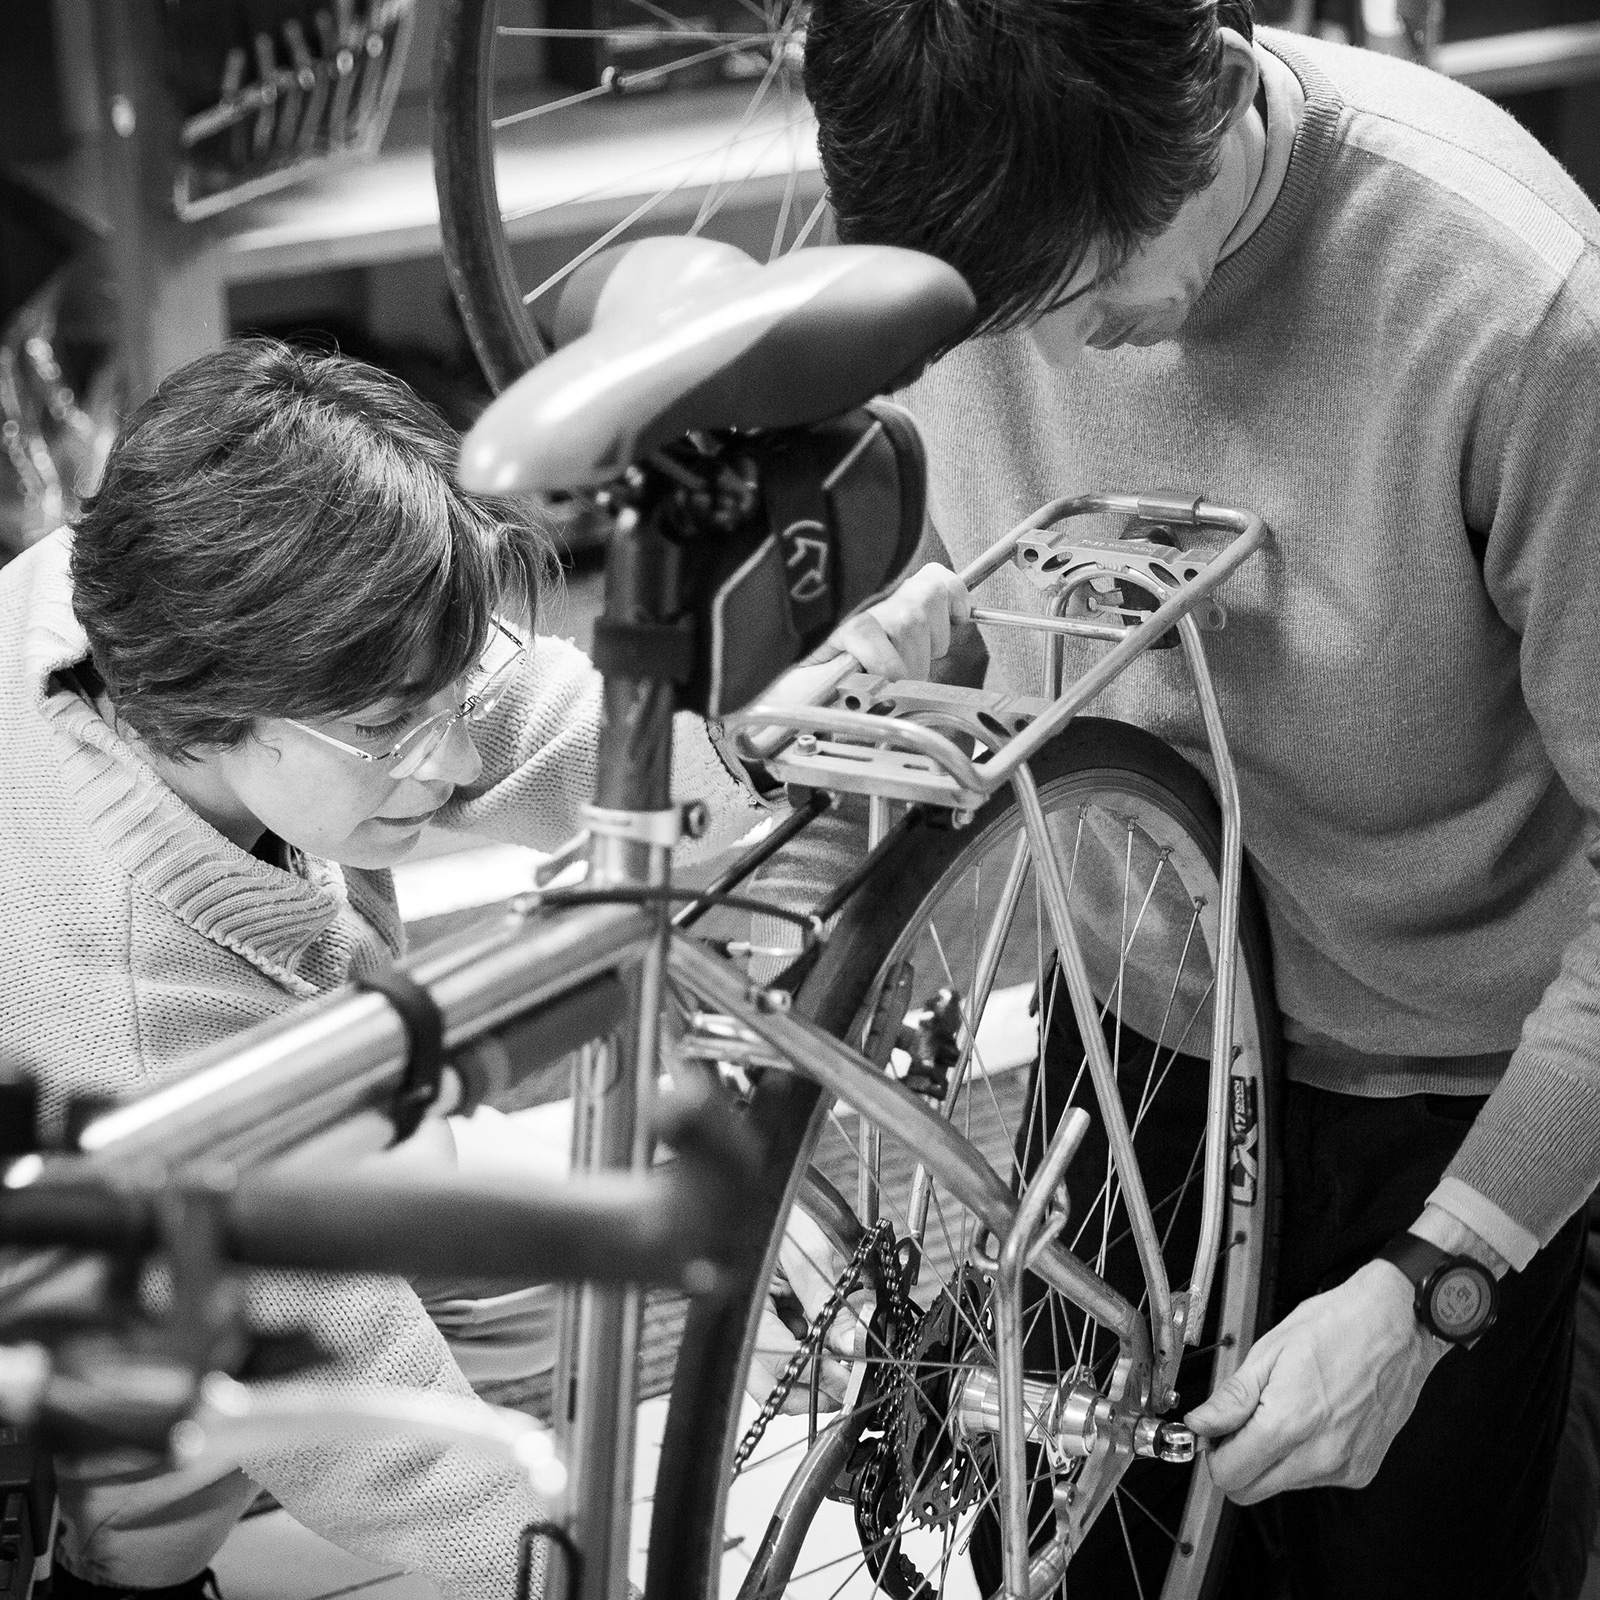 Mechanic skills are among many of the things we look for in tour leaders.